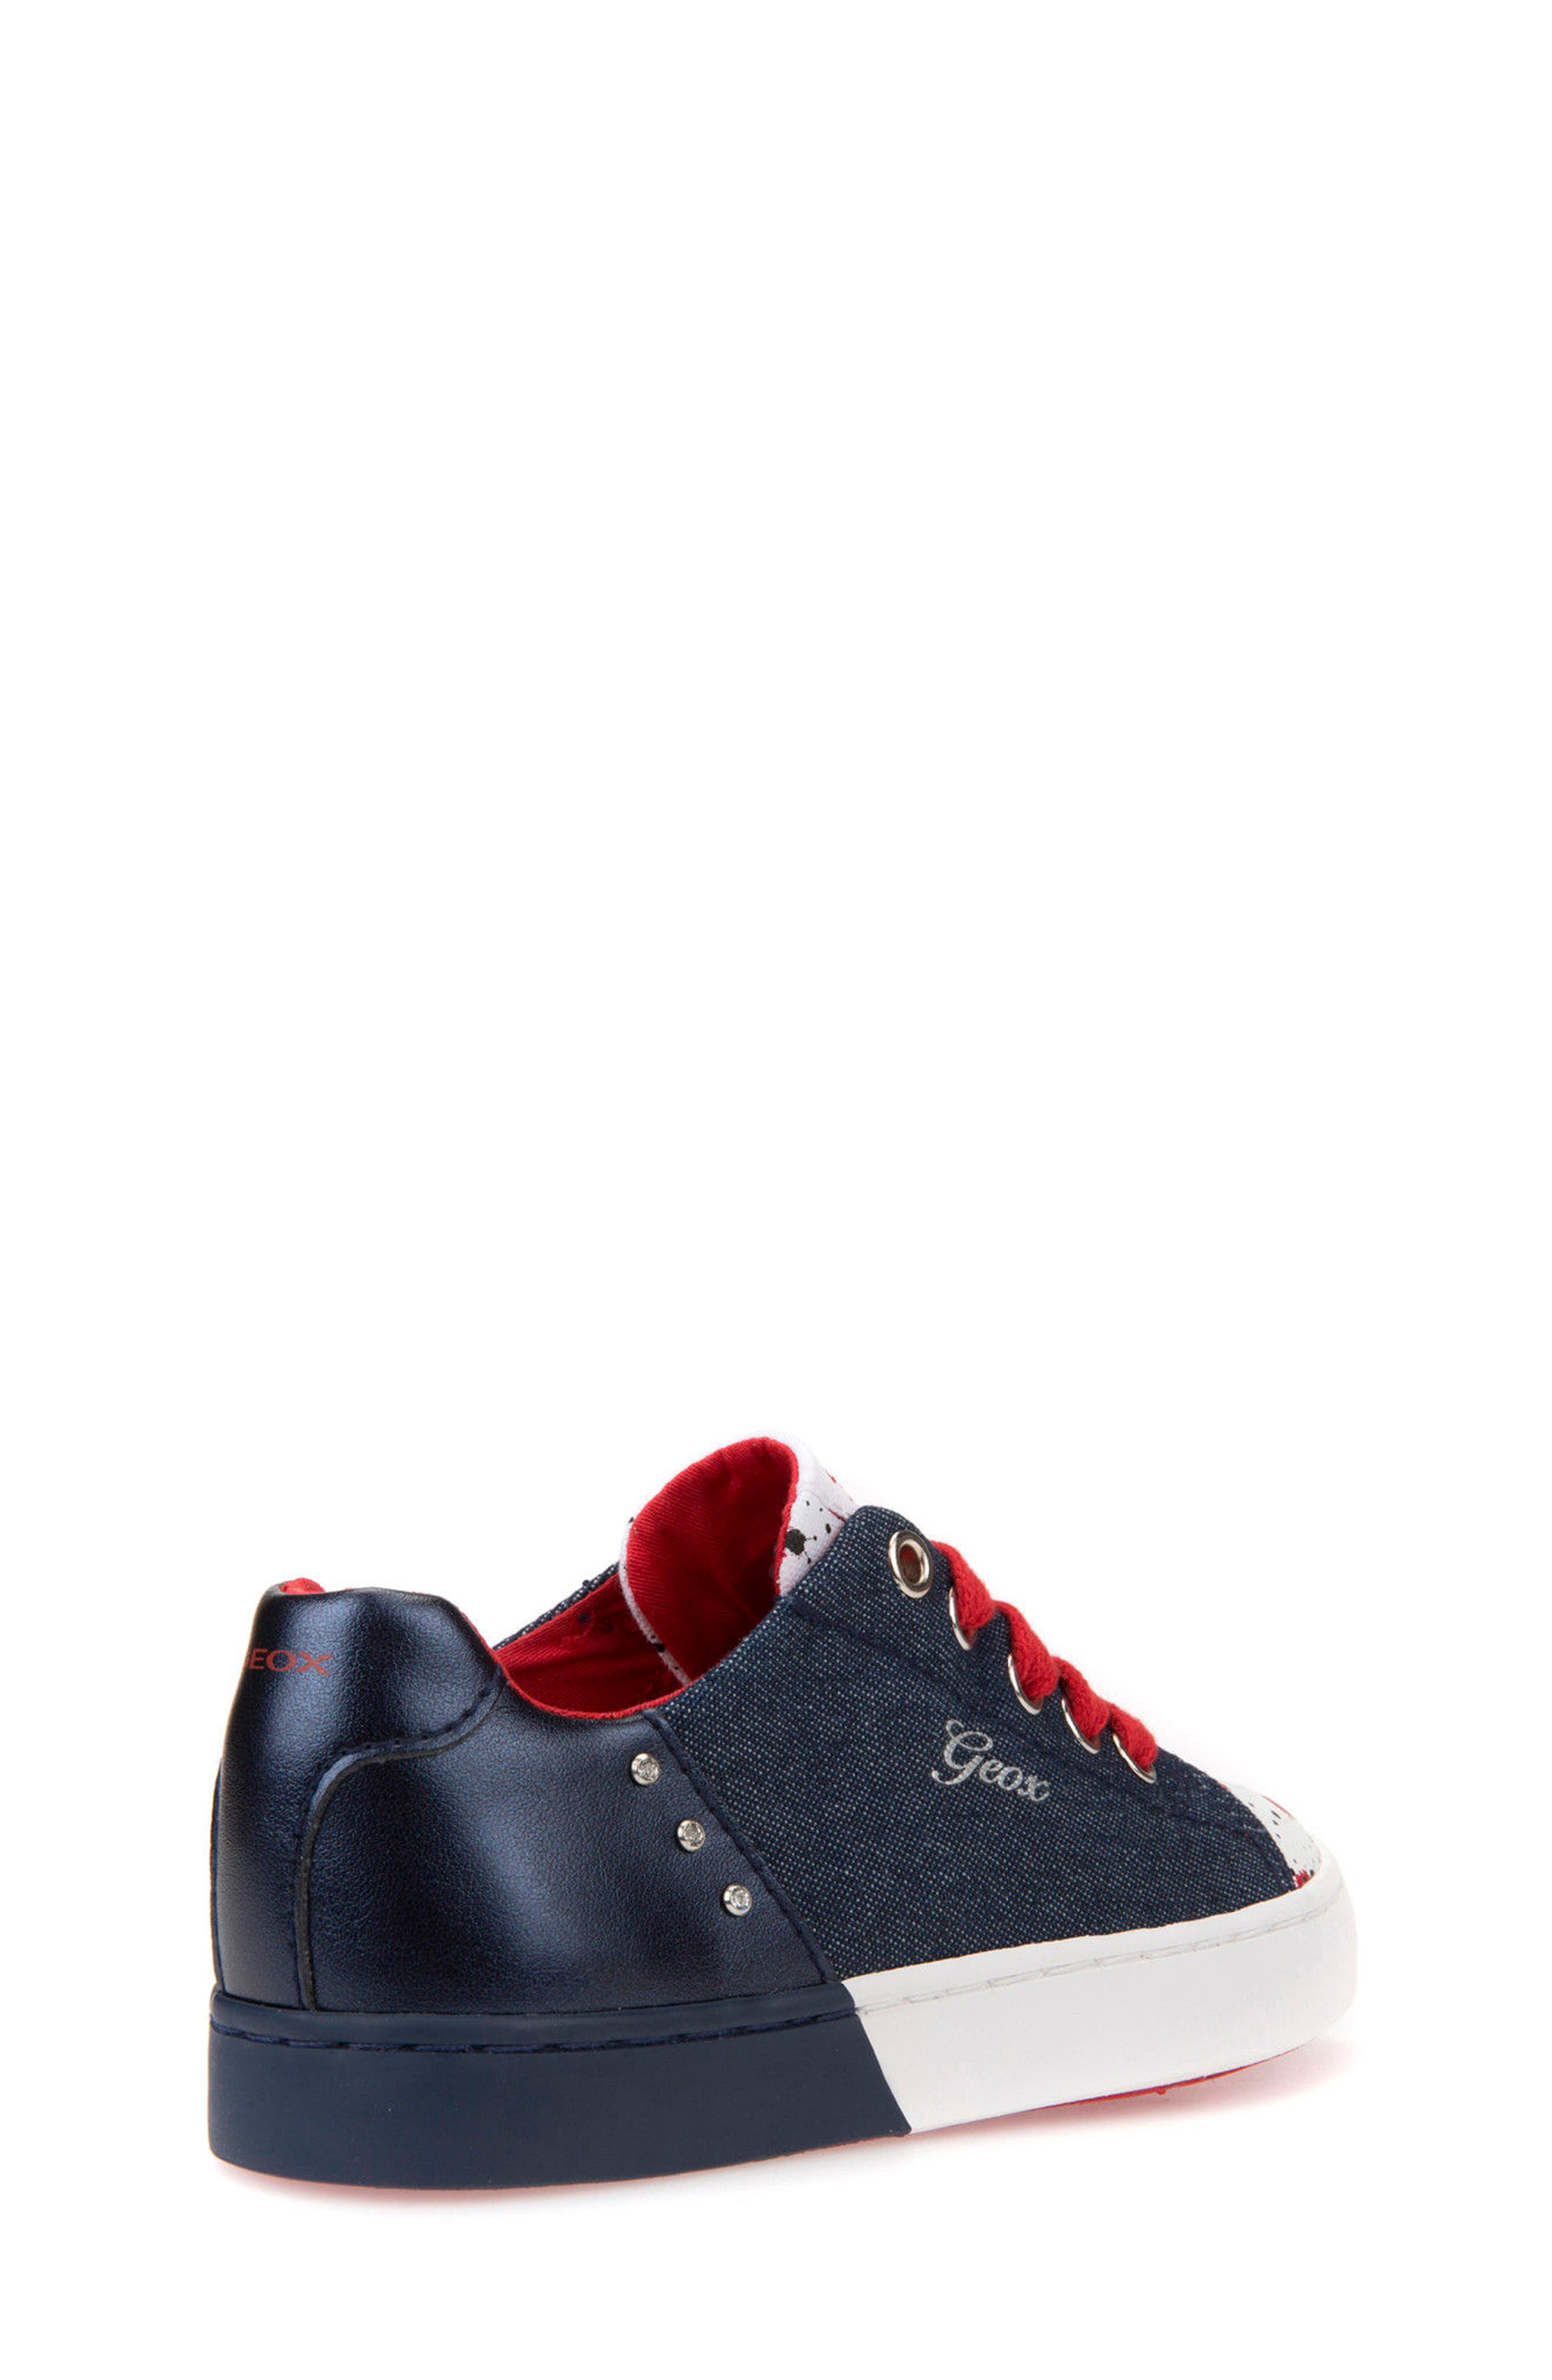 Ciak Low Top Sneaker,                             Alternate thumbnail 2, color,                             Jeans/ Navy